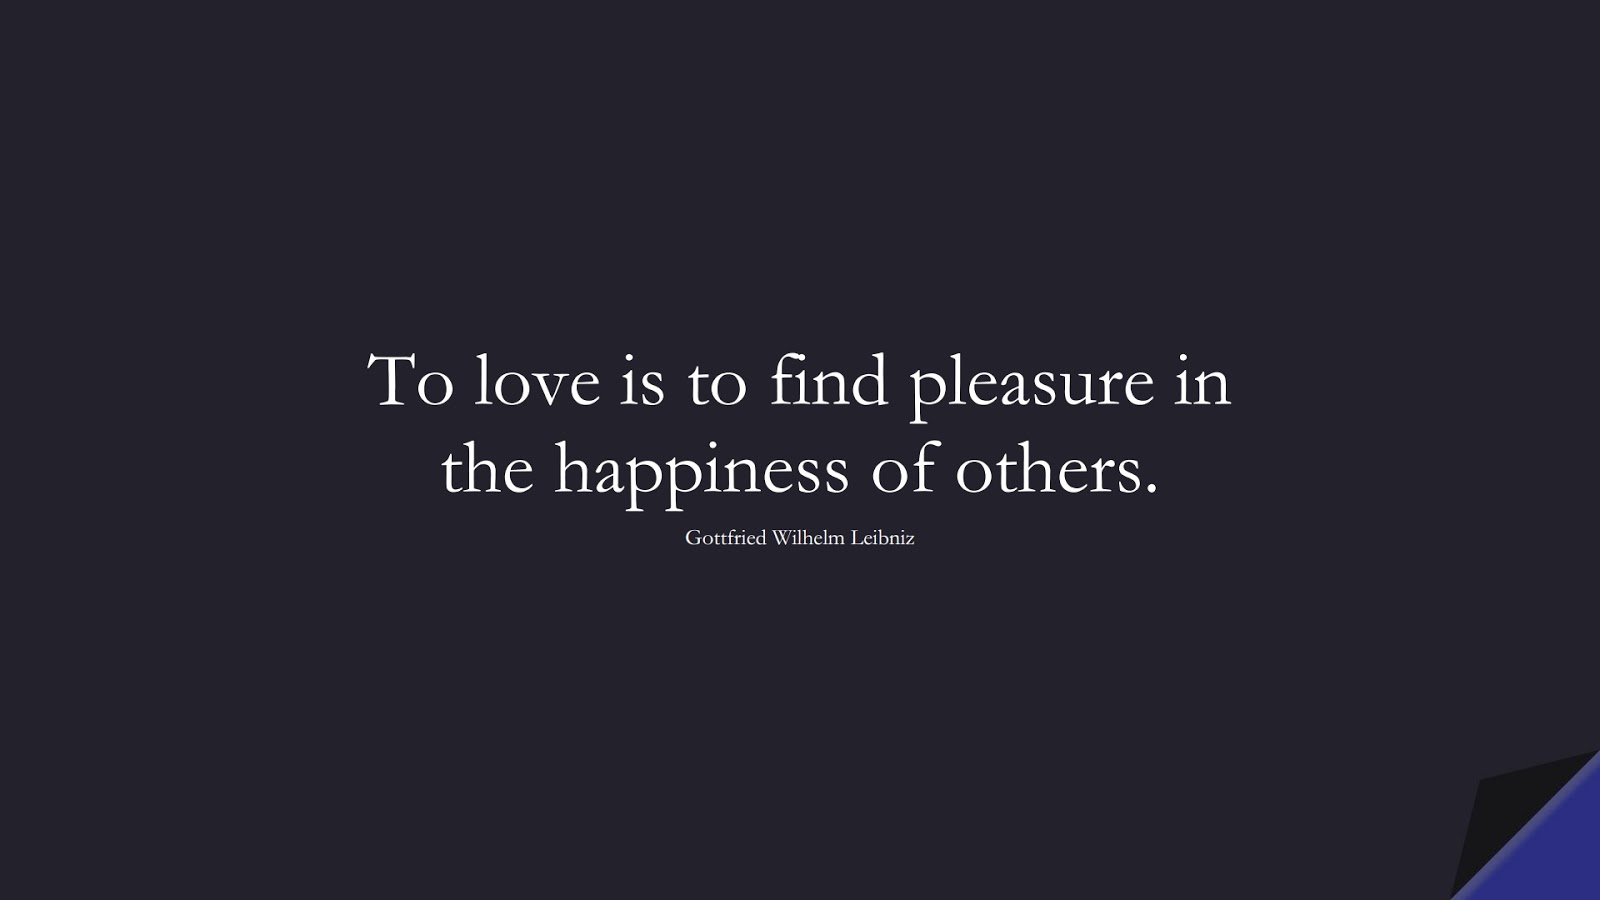 To love is to find pleasure in the happiness of others. (Gottfried Wilhelm Leibniz);  #LoveQuotes